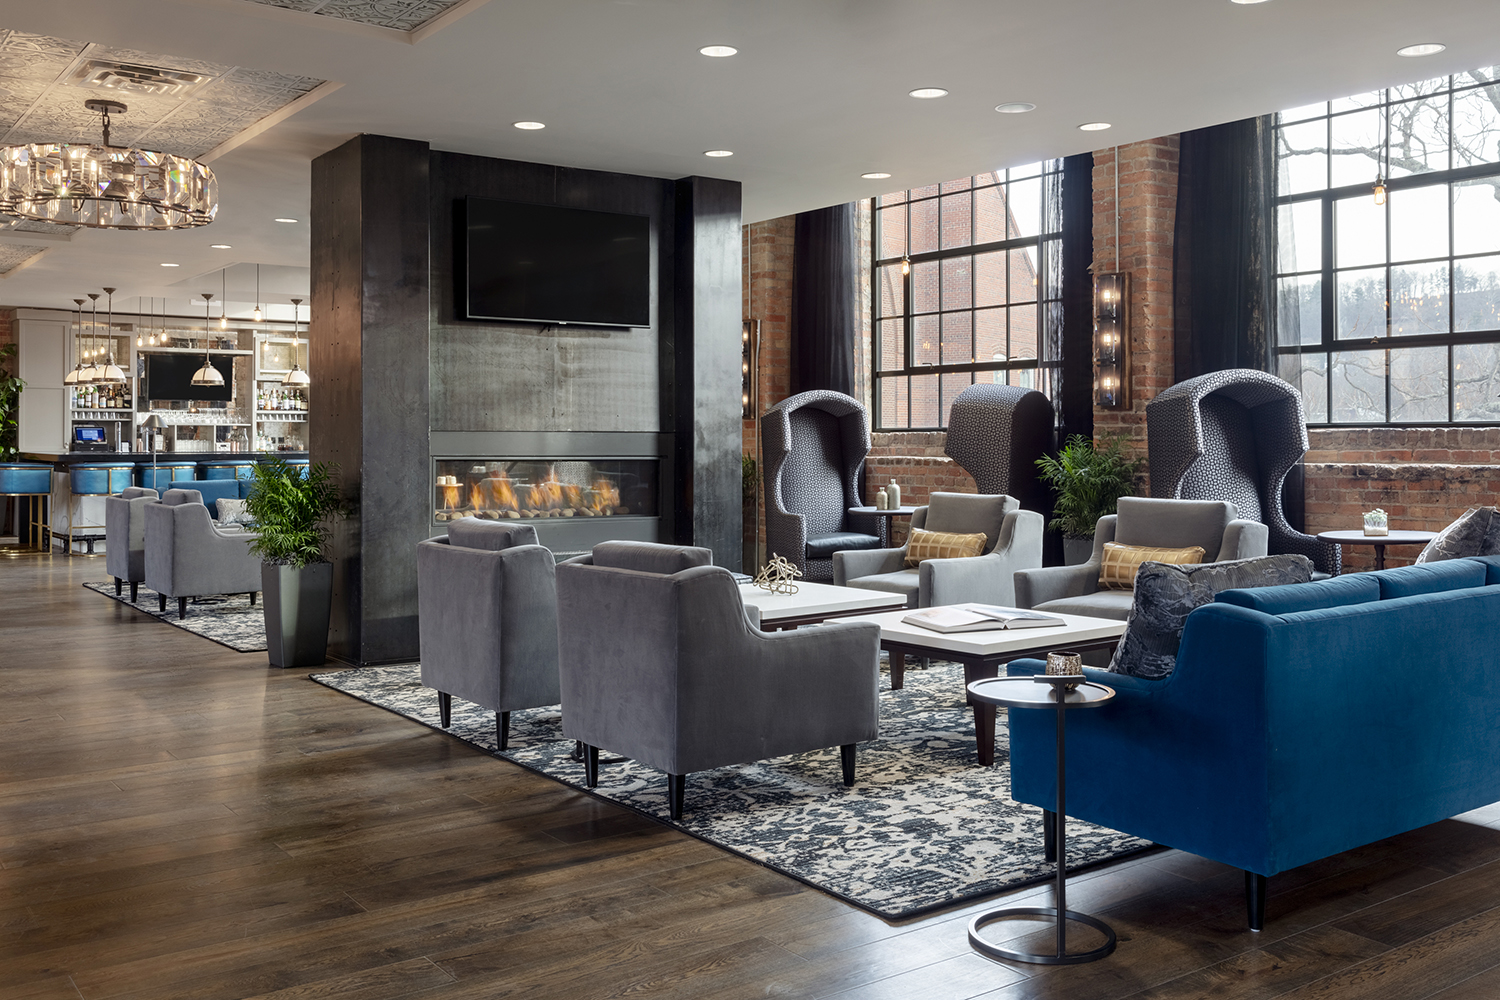 The 87-room luxury boutique hotel combines three historic buildings with two new builds in the heart of The Block neighborhood.